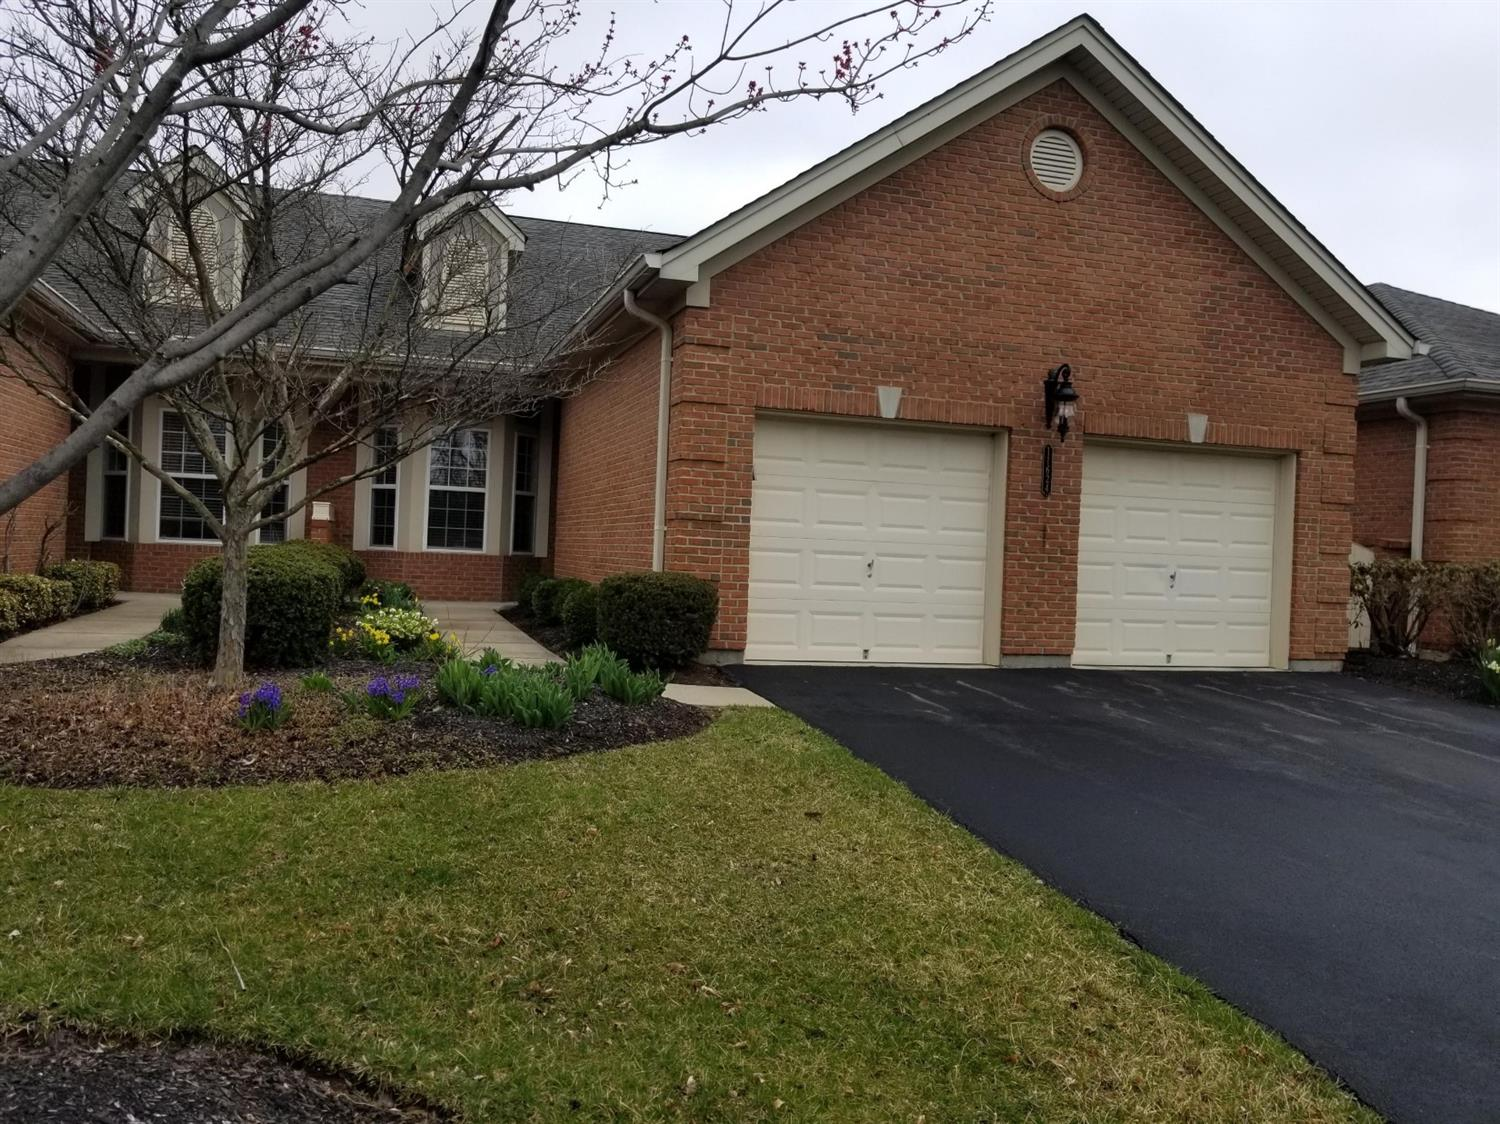 Property for sale at 11624 Chancery Lane, Sycamore Twp,  Ohio 45249